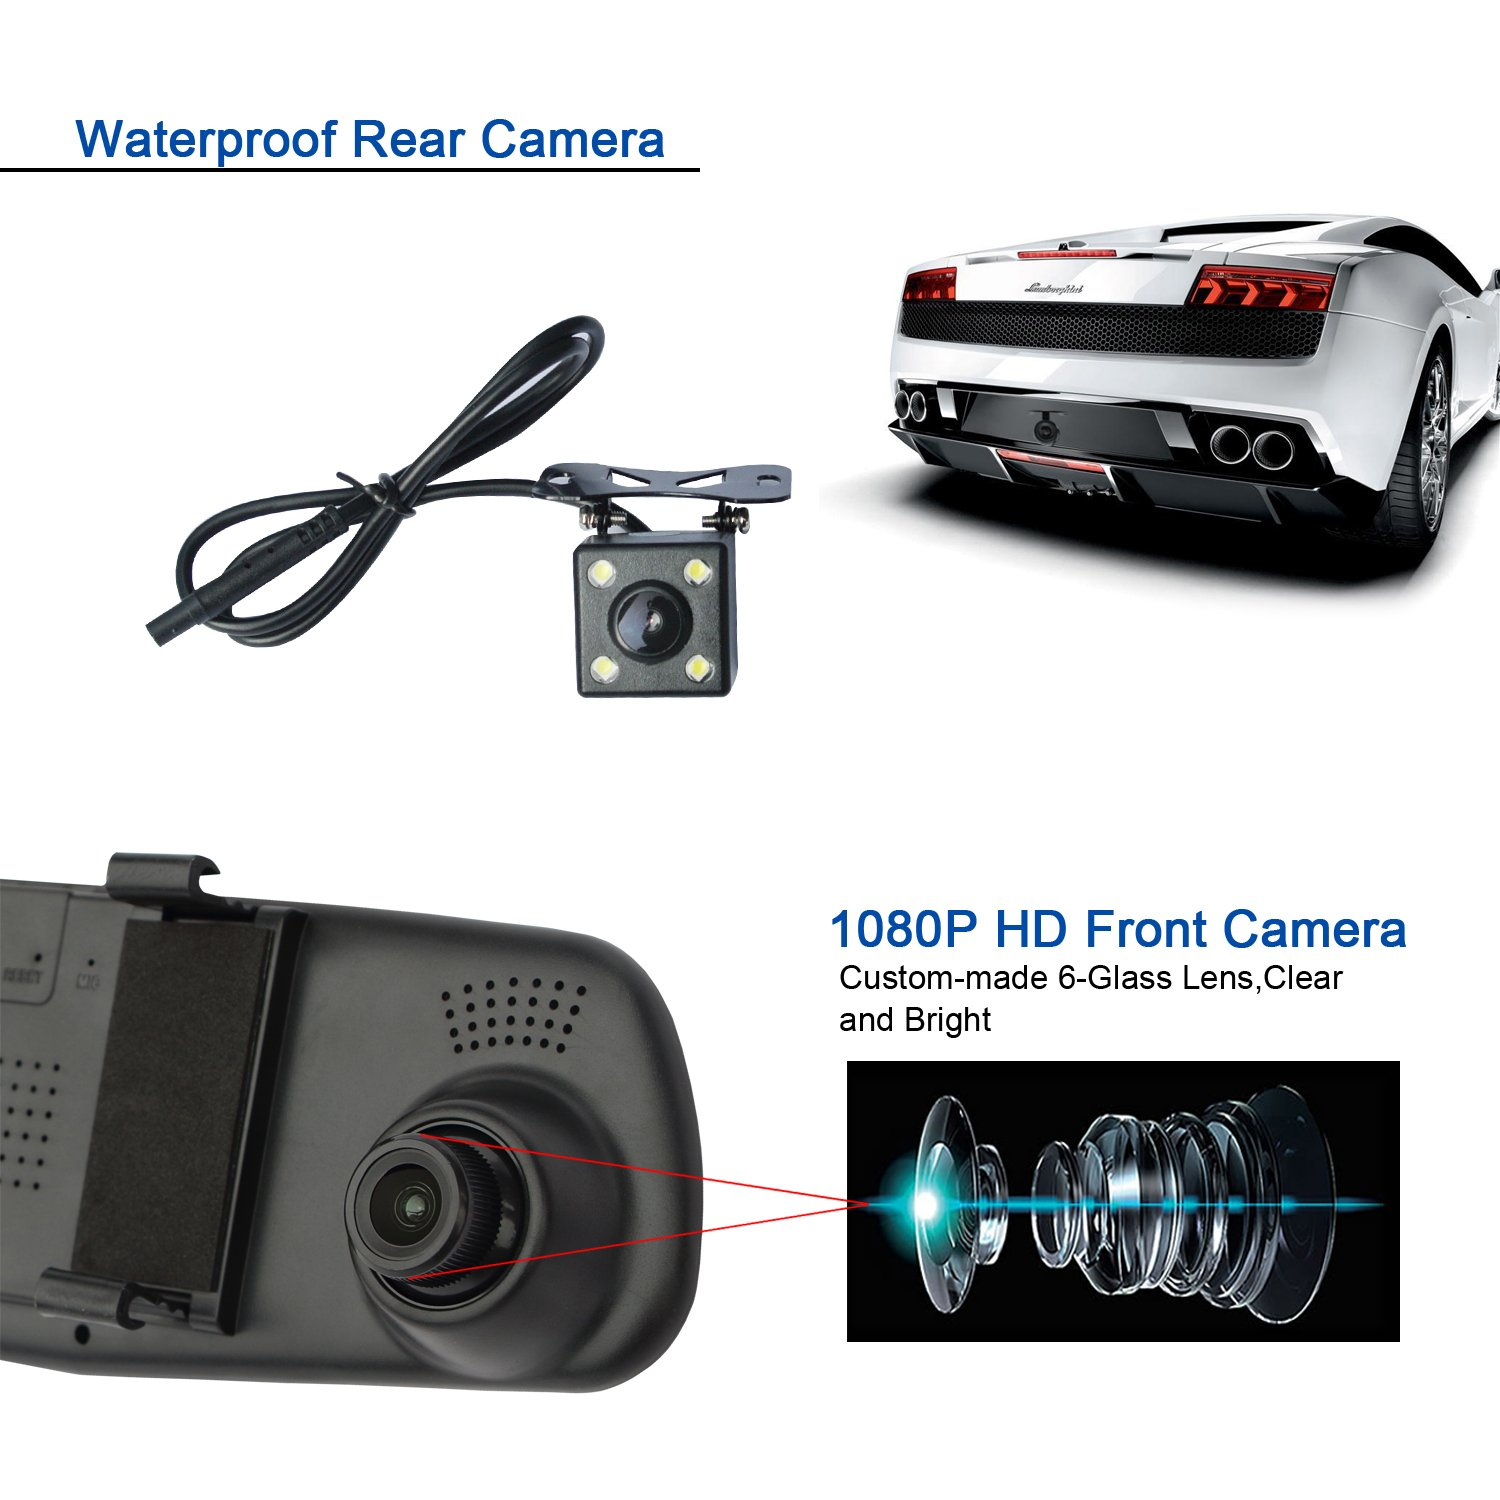 Dash Cam Lexxson 10Meter Longer Cable Dual Lens Car Camera 4.3 Full HD Car Vehicle Dashboard Camera Video Recorder For Vehicles Front and Rear DVR L2010x10m